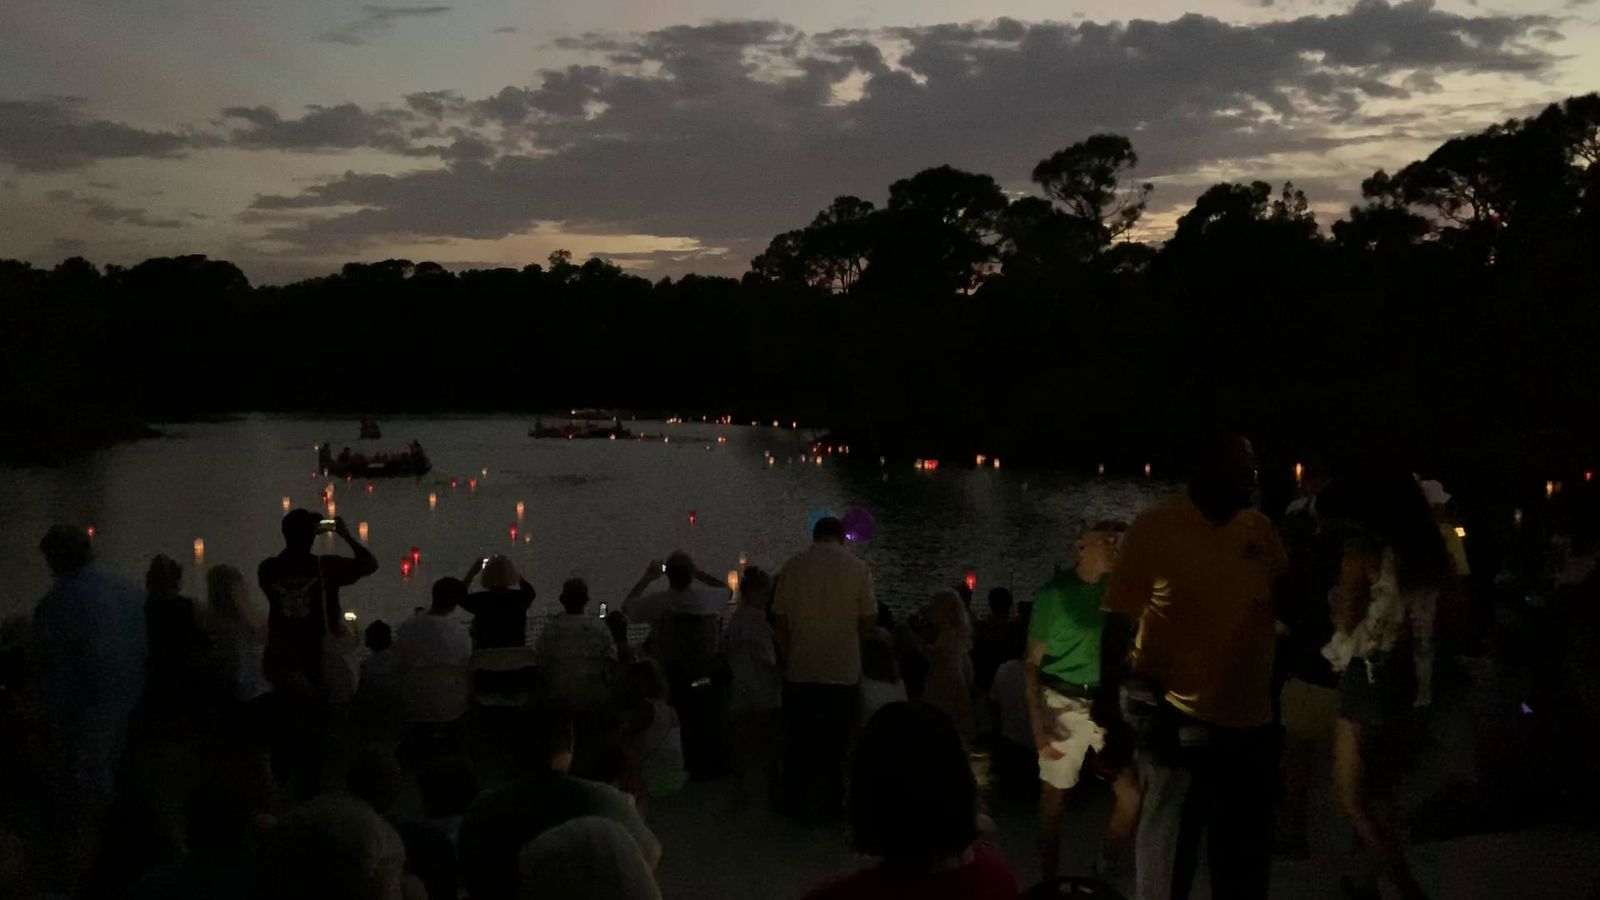 The Morikami Museum and Japanese Garden hosted its annual Lantern Festival Saturday night. Over 5,000 guests attended the sold-out event. (Morikami Museum and Japanese Garden)